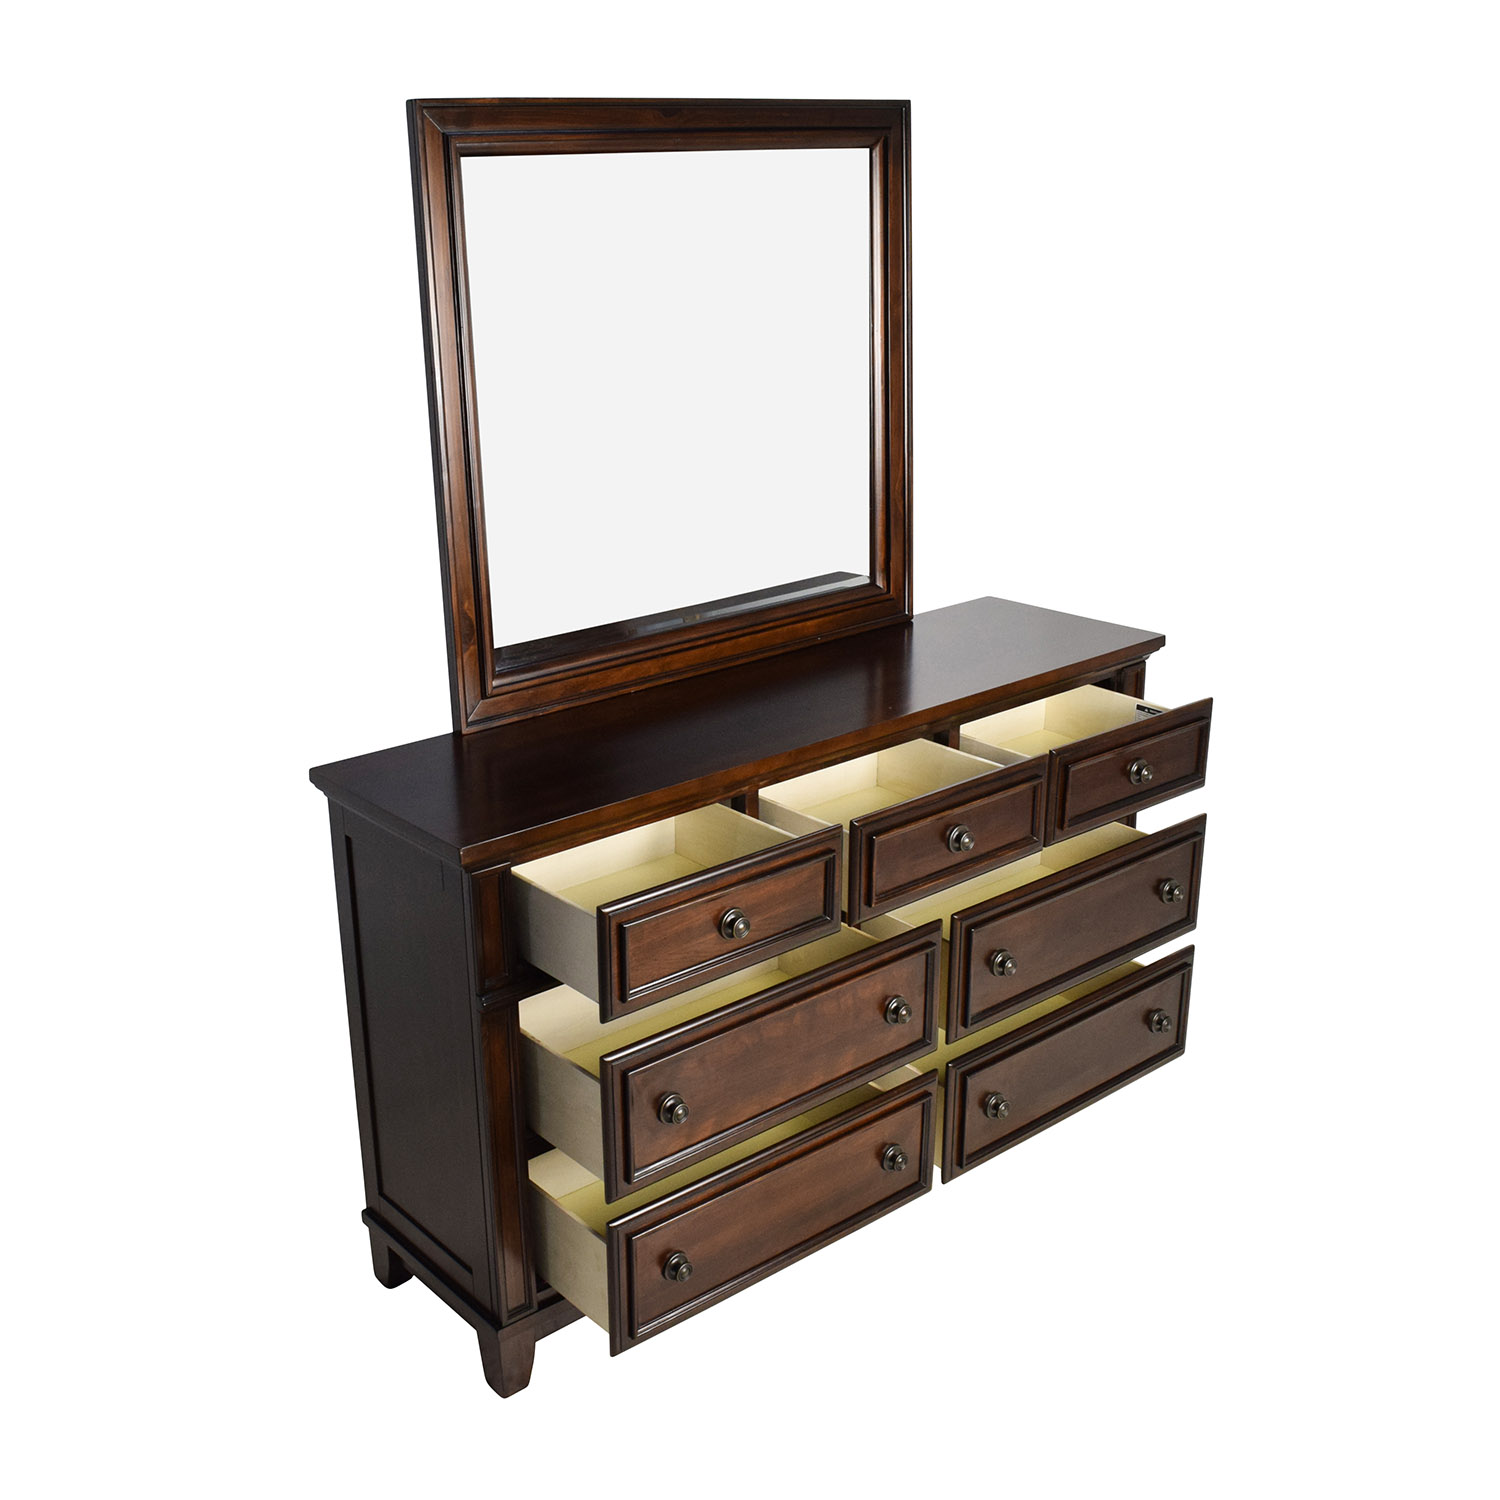 Harwich Cherry Harwich Cherry 7-Drawer Dresser and Mirror Storage